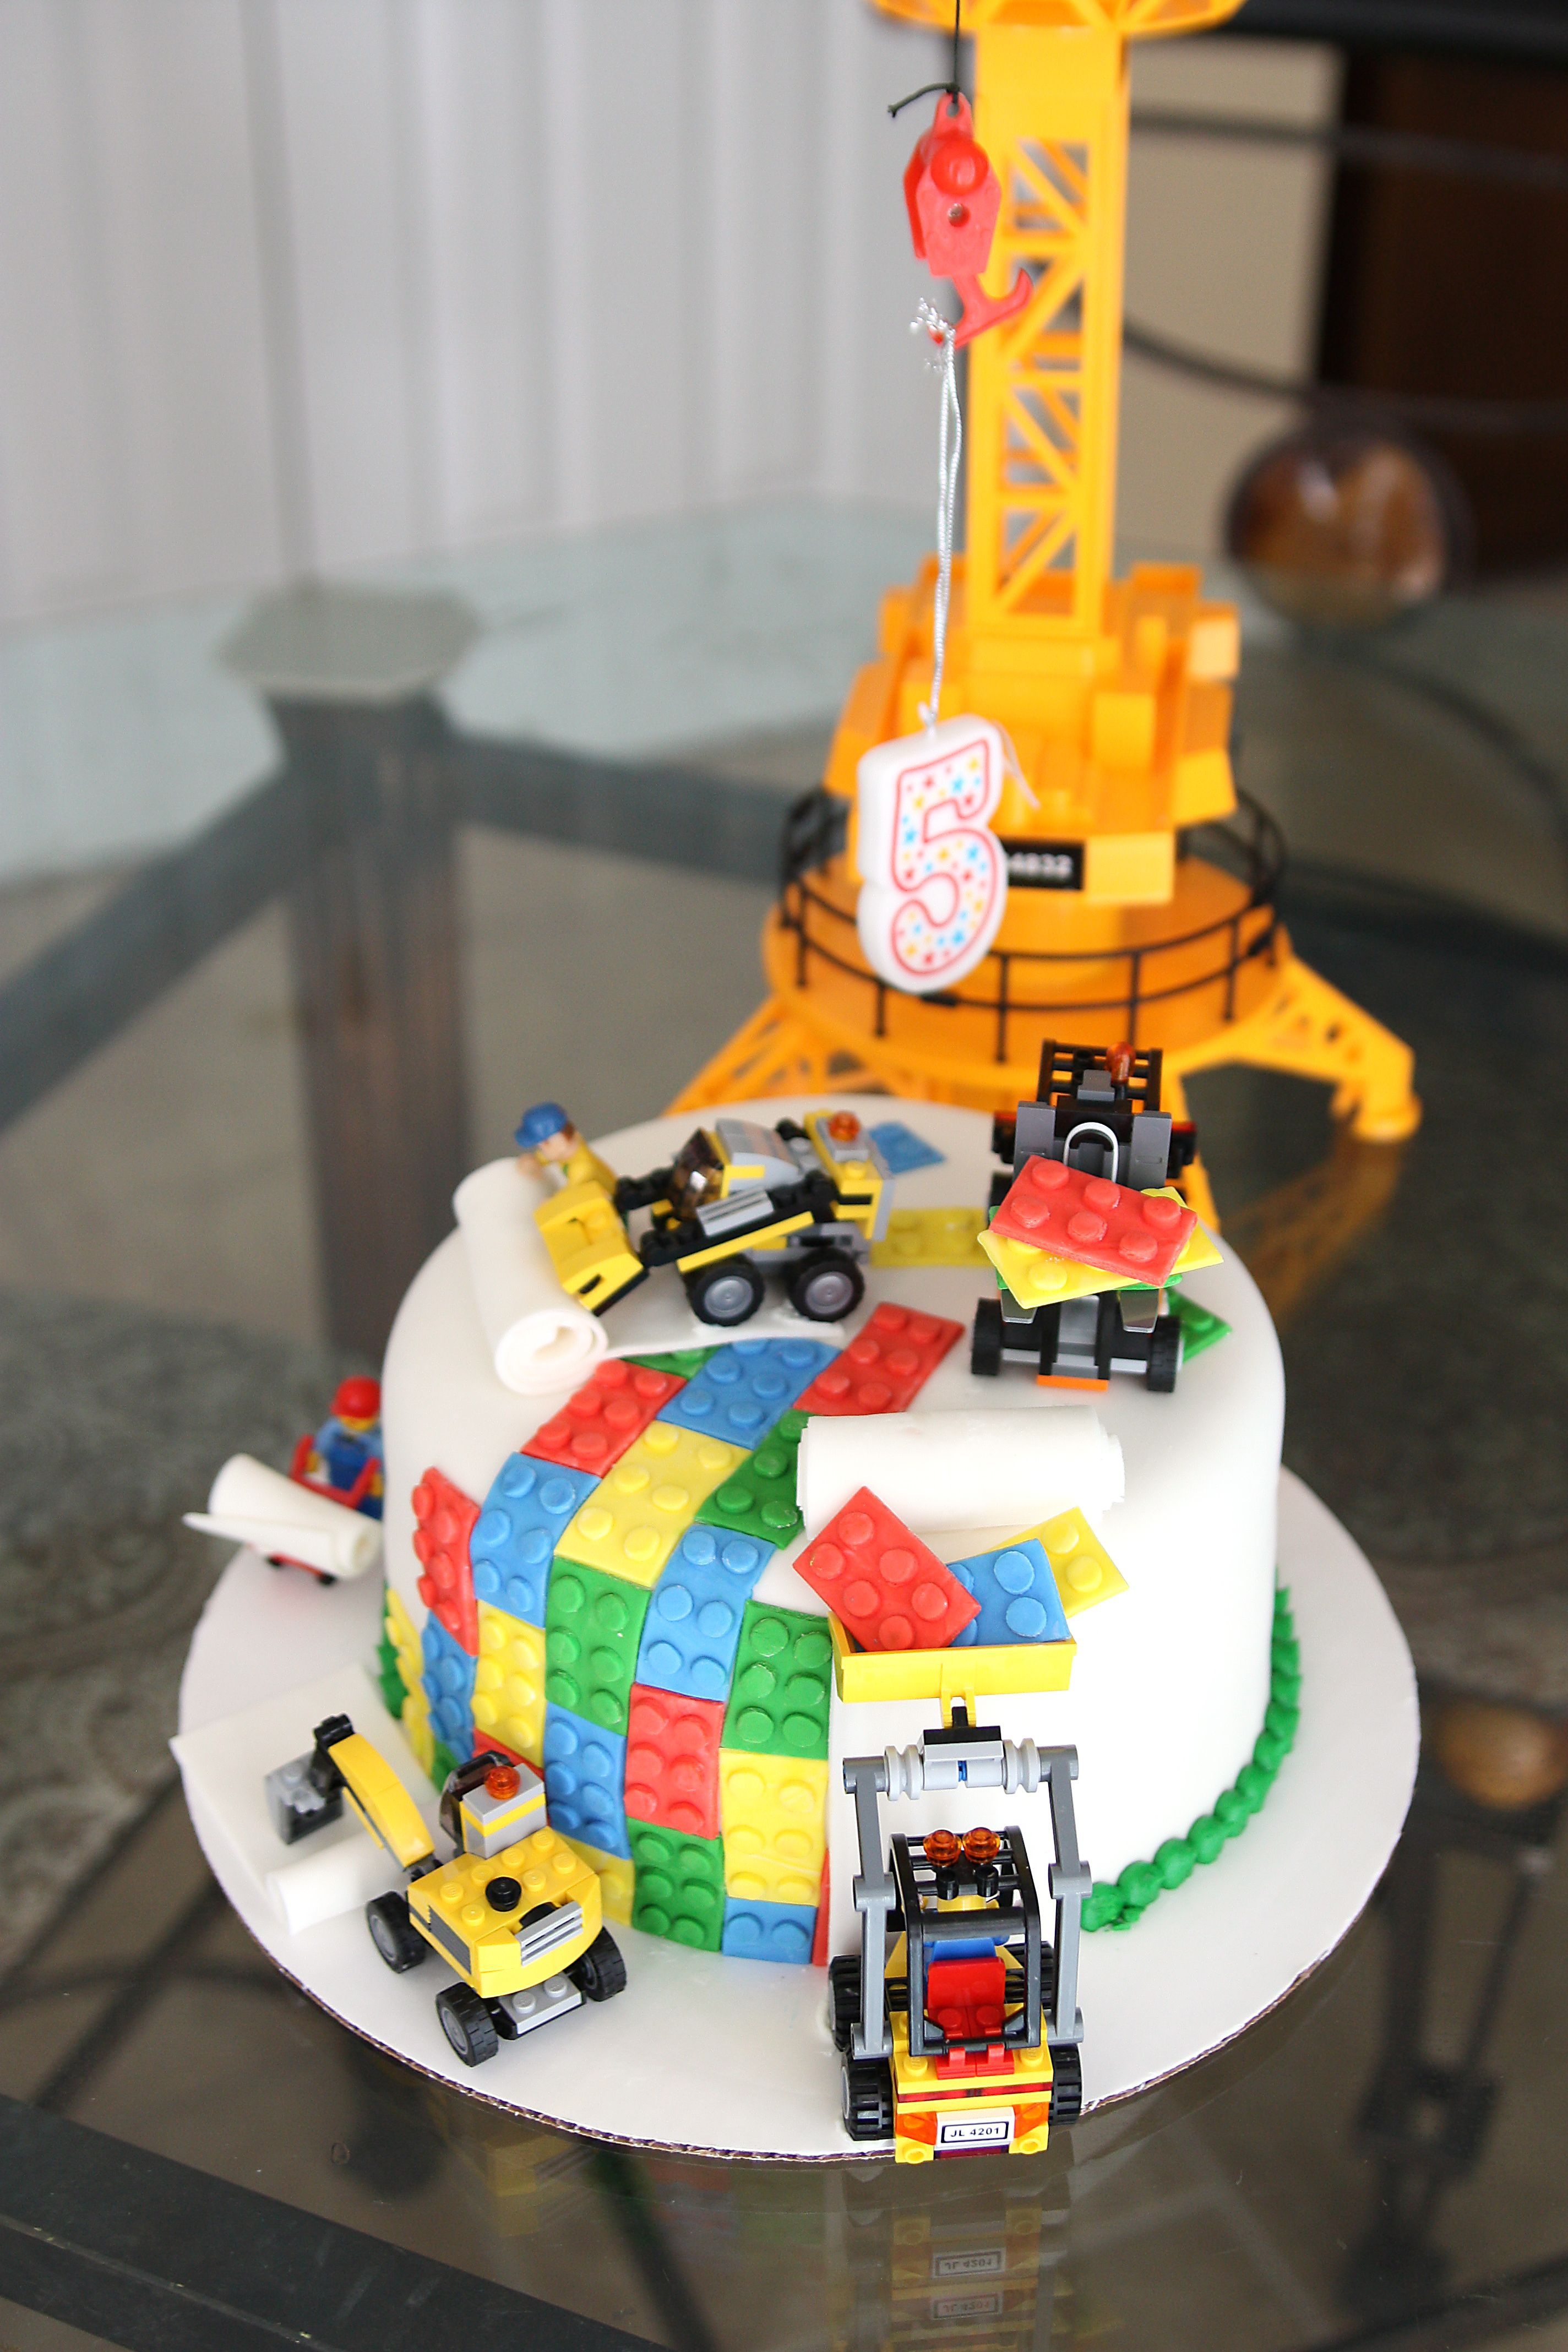 Marvelous An Amazing Lego Cake My Little Boy Is 5 With Images Lego Funny Birthday Cards Online Barepcheapnameinfo